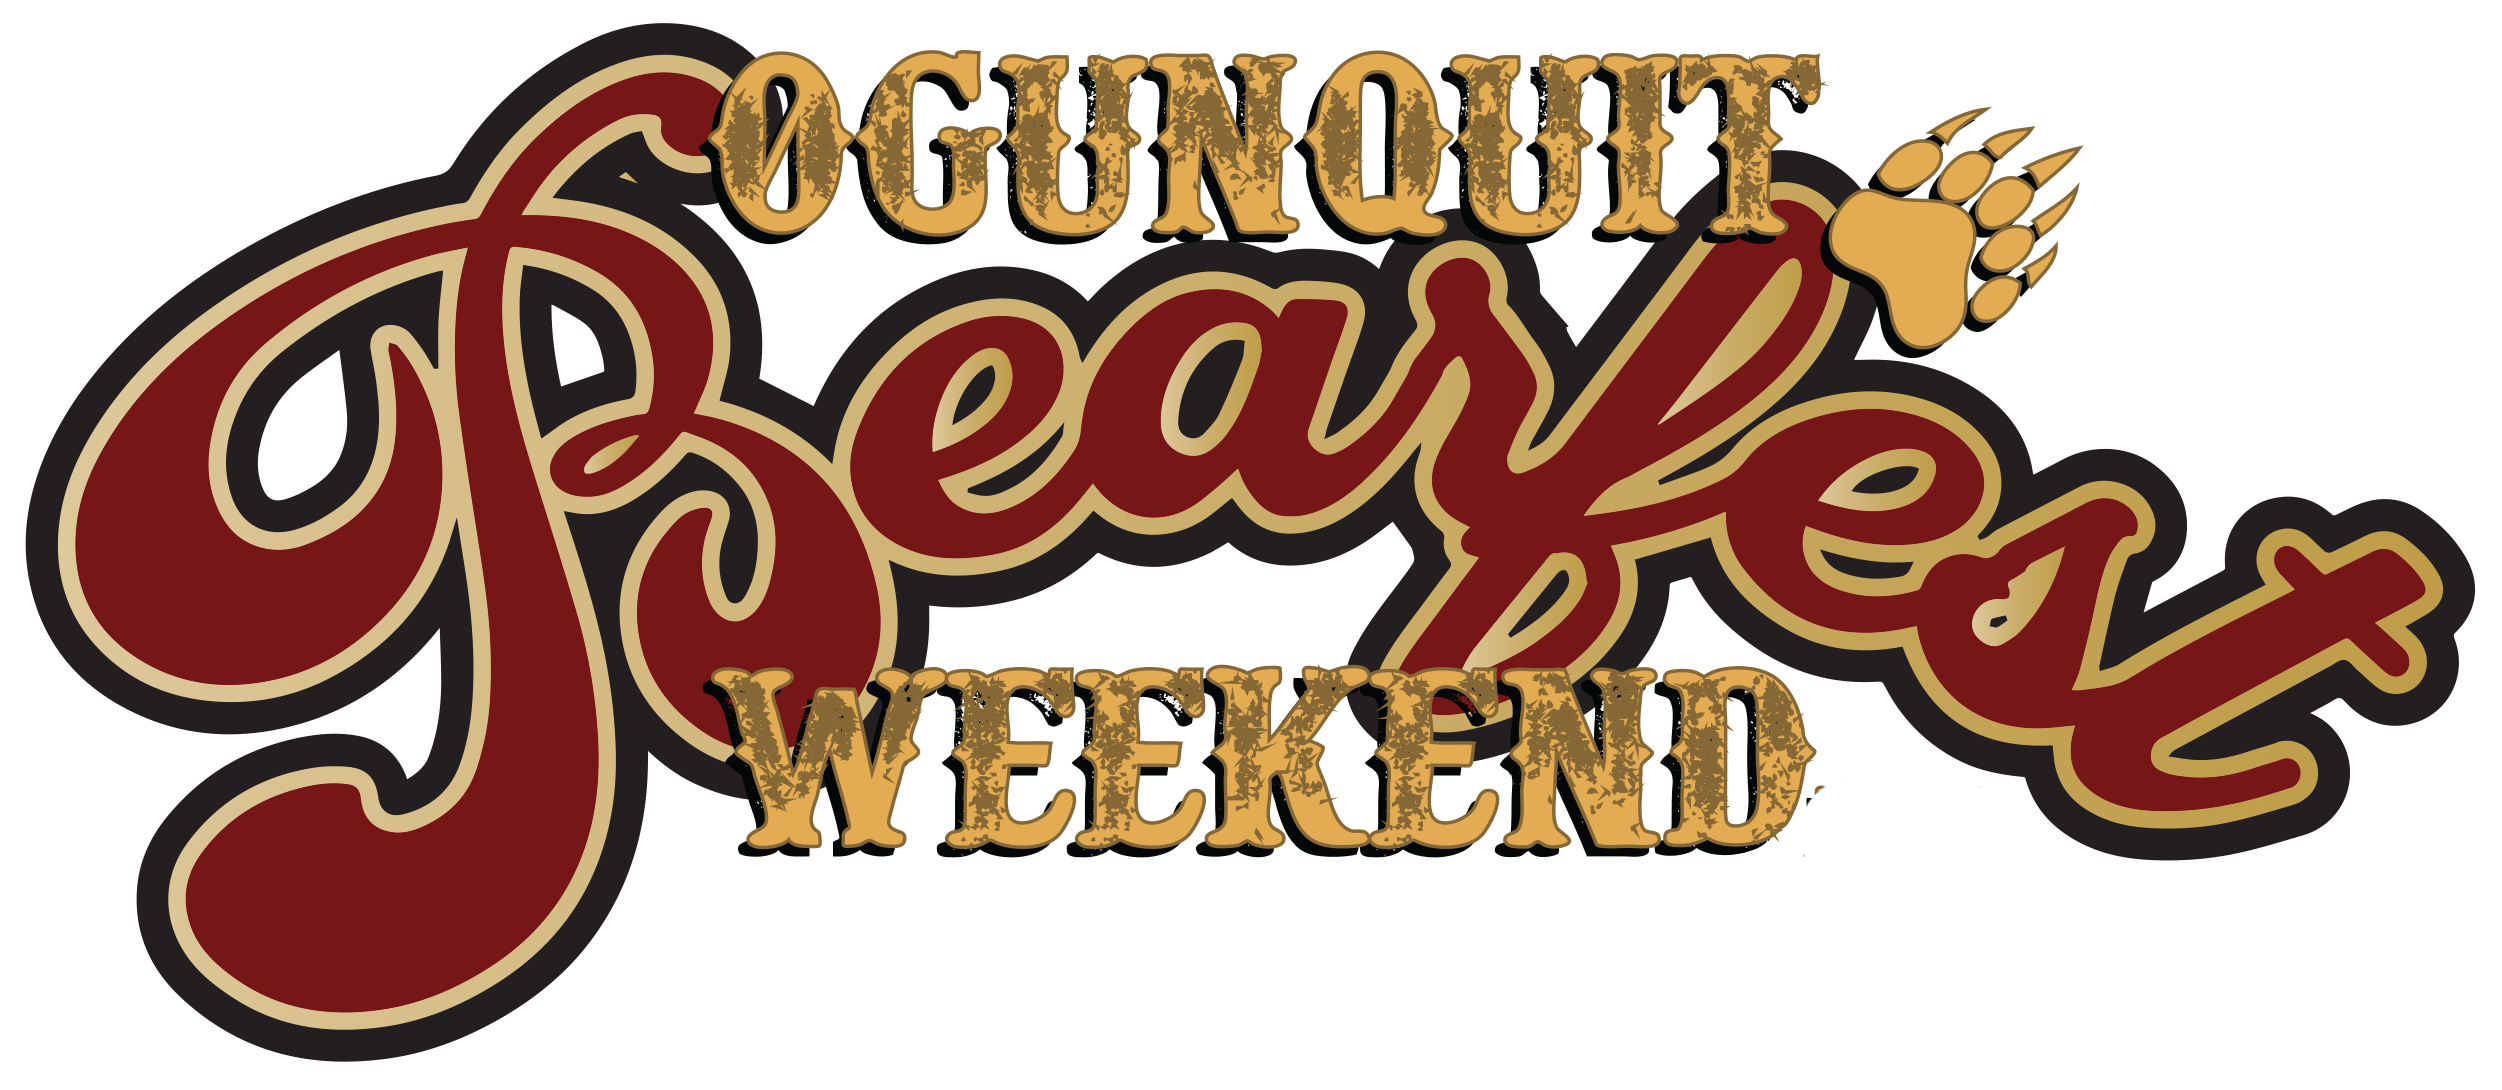 bearfest-logo-no-year-c18a-copy-copy.png